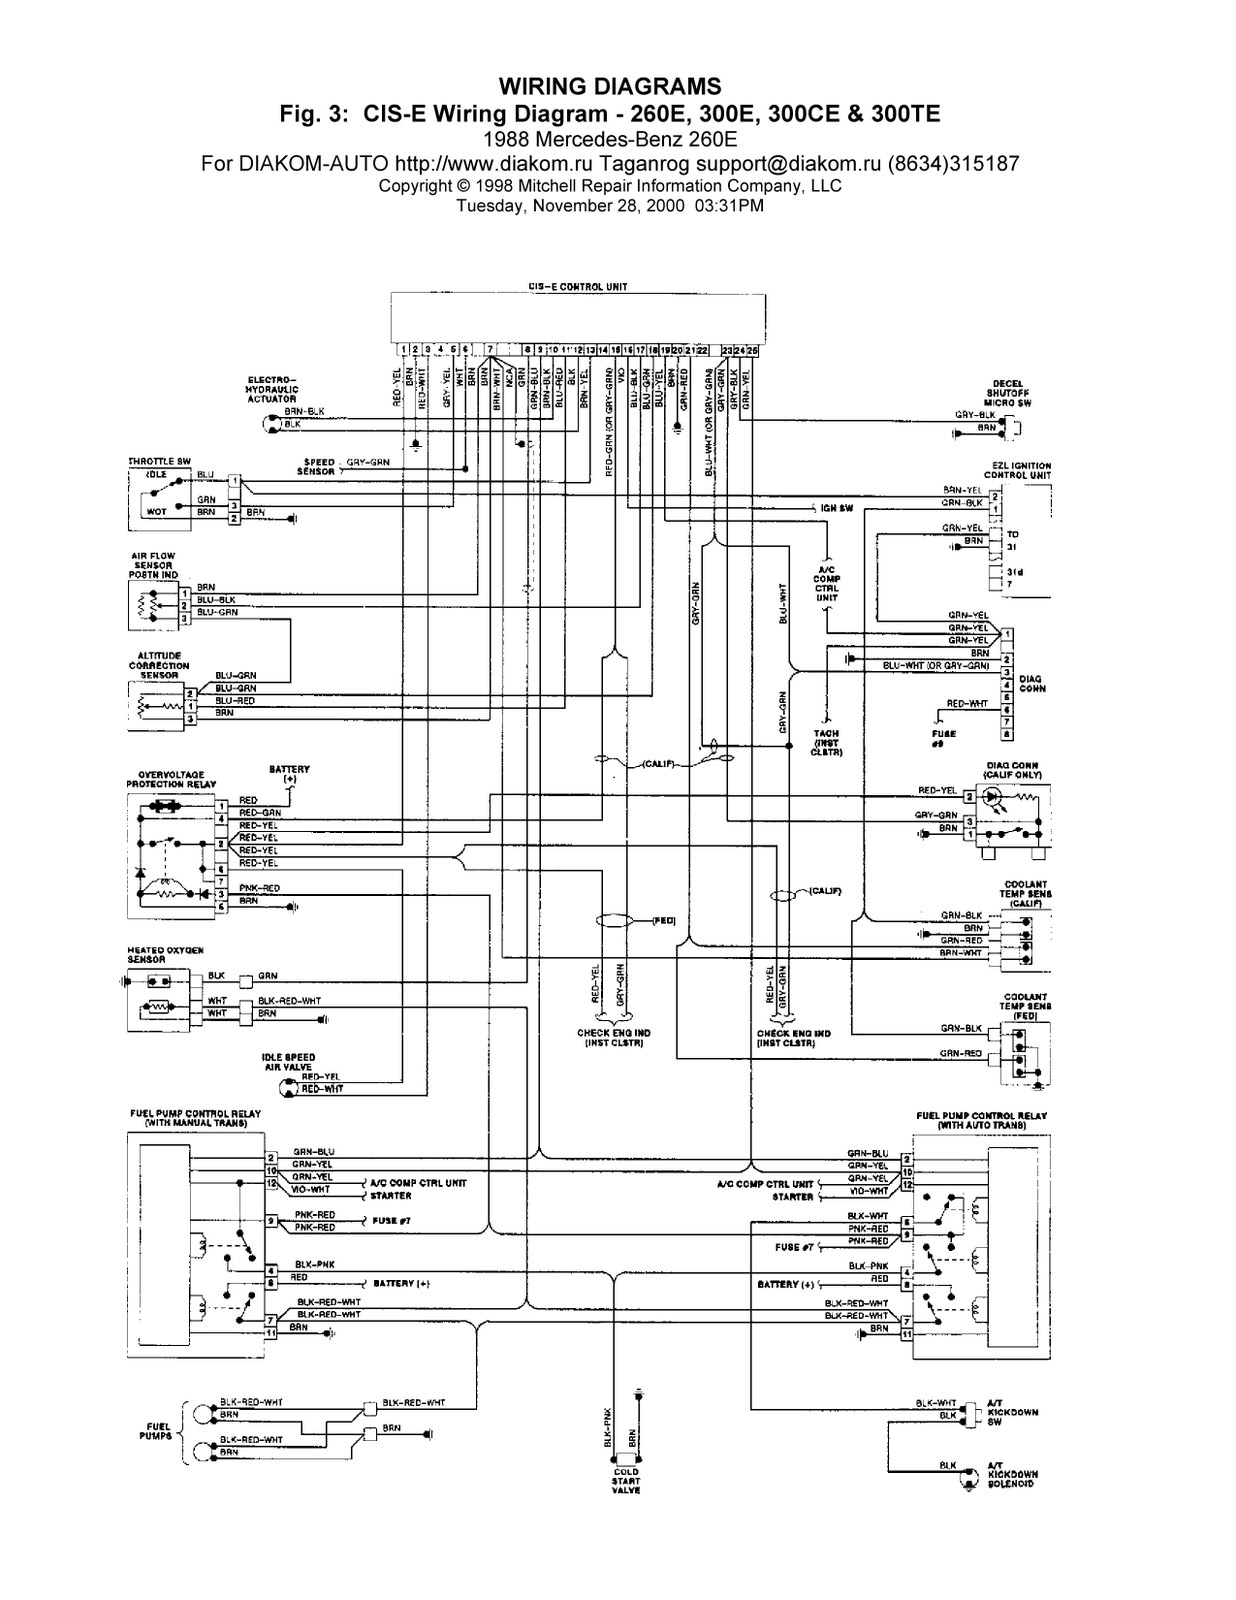 Mercedes r wiring diagram